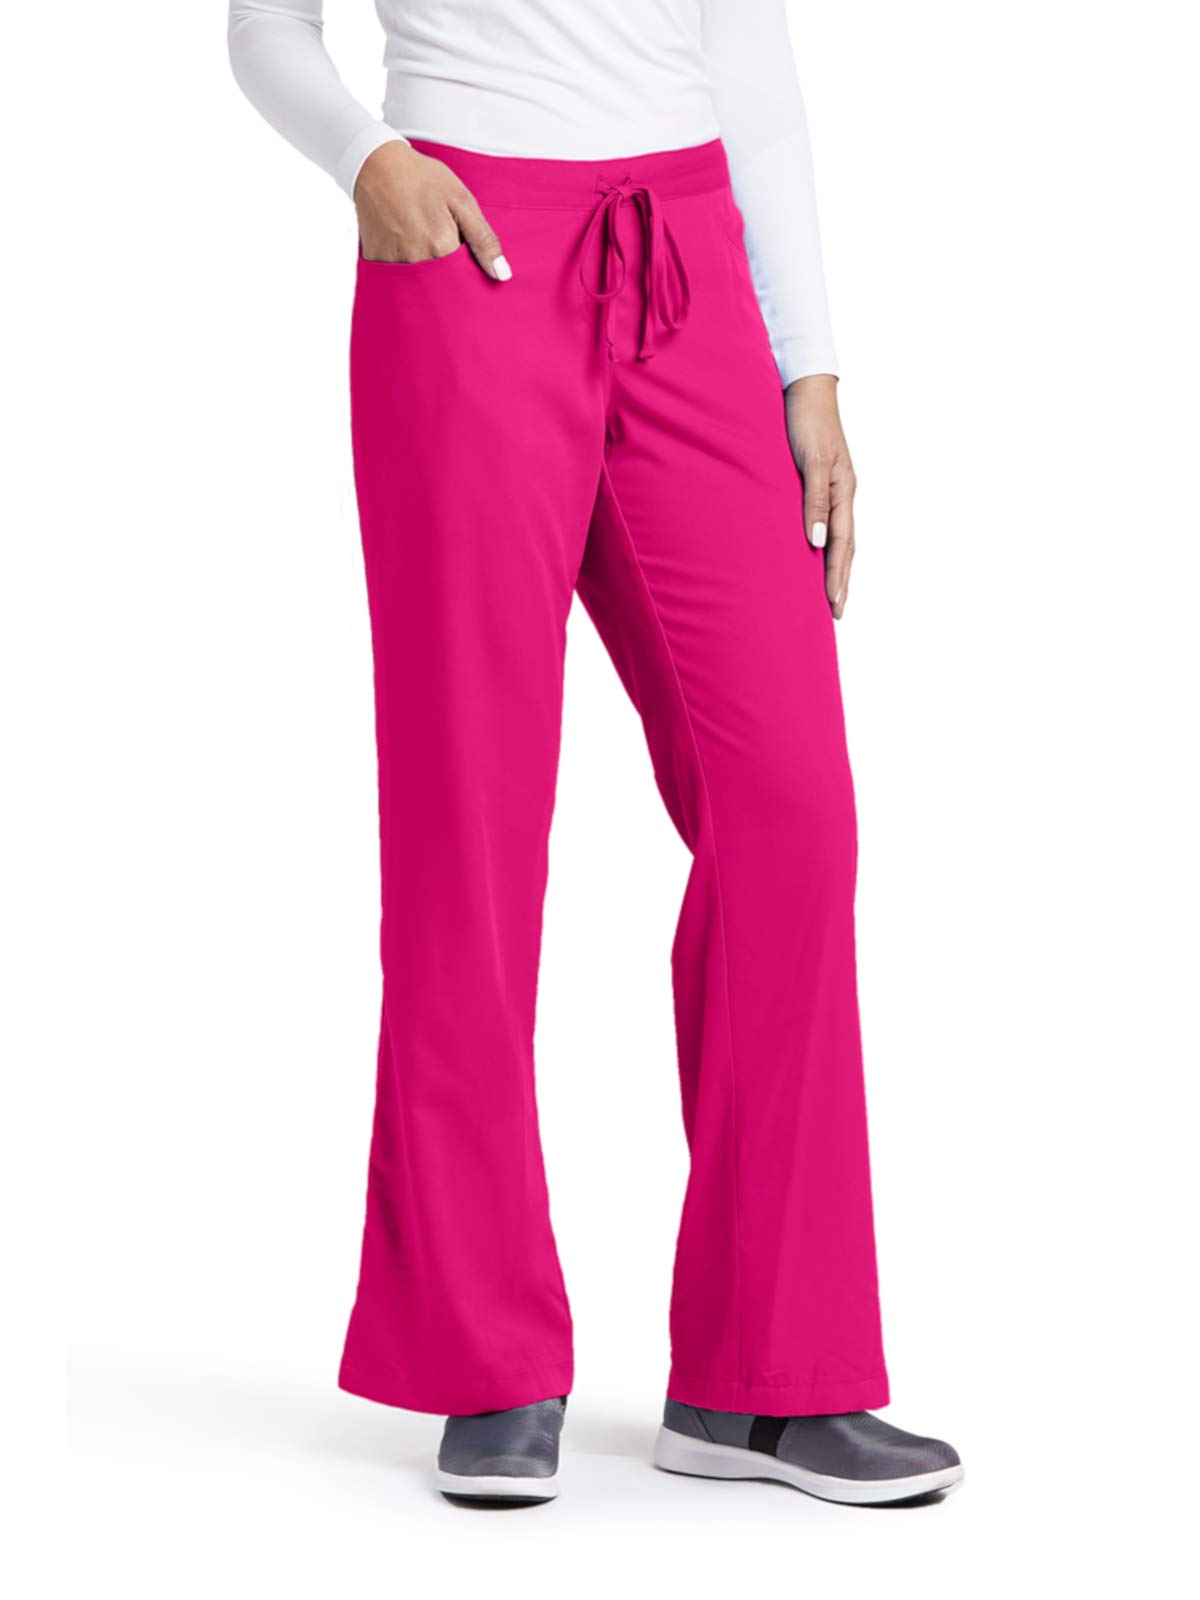 Grey's Anatomy 4232 Tie Front Pant Raspberry Tart S Tall by Barco